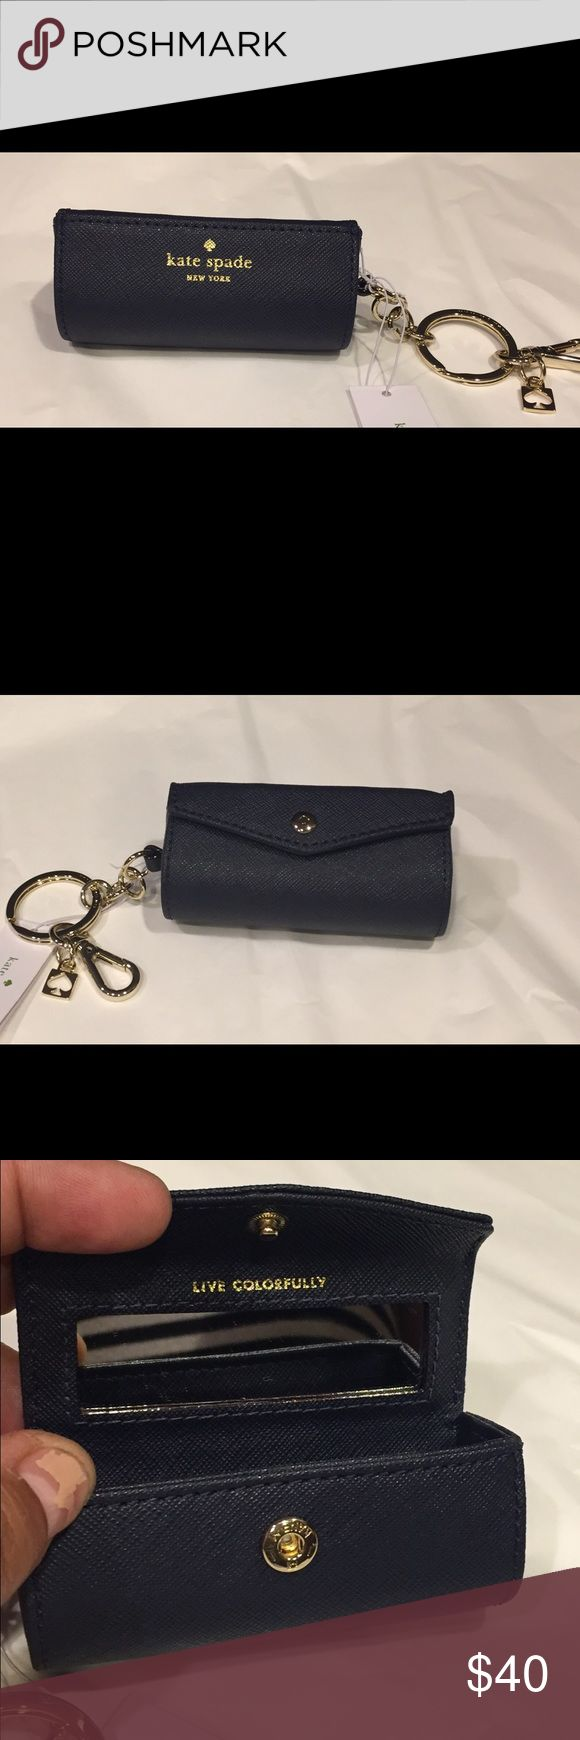 """Kate Spade lipstick case key fob NWT Kate Spade lipstick case key fob.  Snap closure opens to a lipstick sized case and mirror for that quick touch up. Approximately 3.5"""" long. NWT. NO TRADES kate spade Accessories Key & Card Holders"""